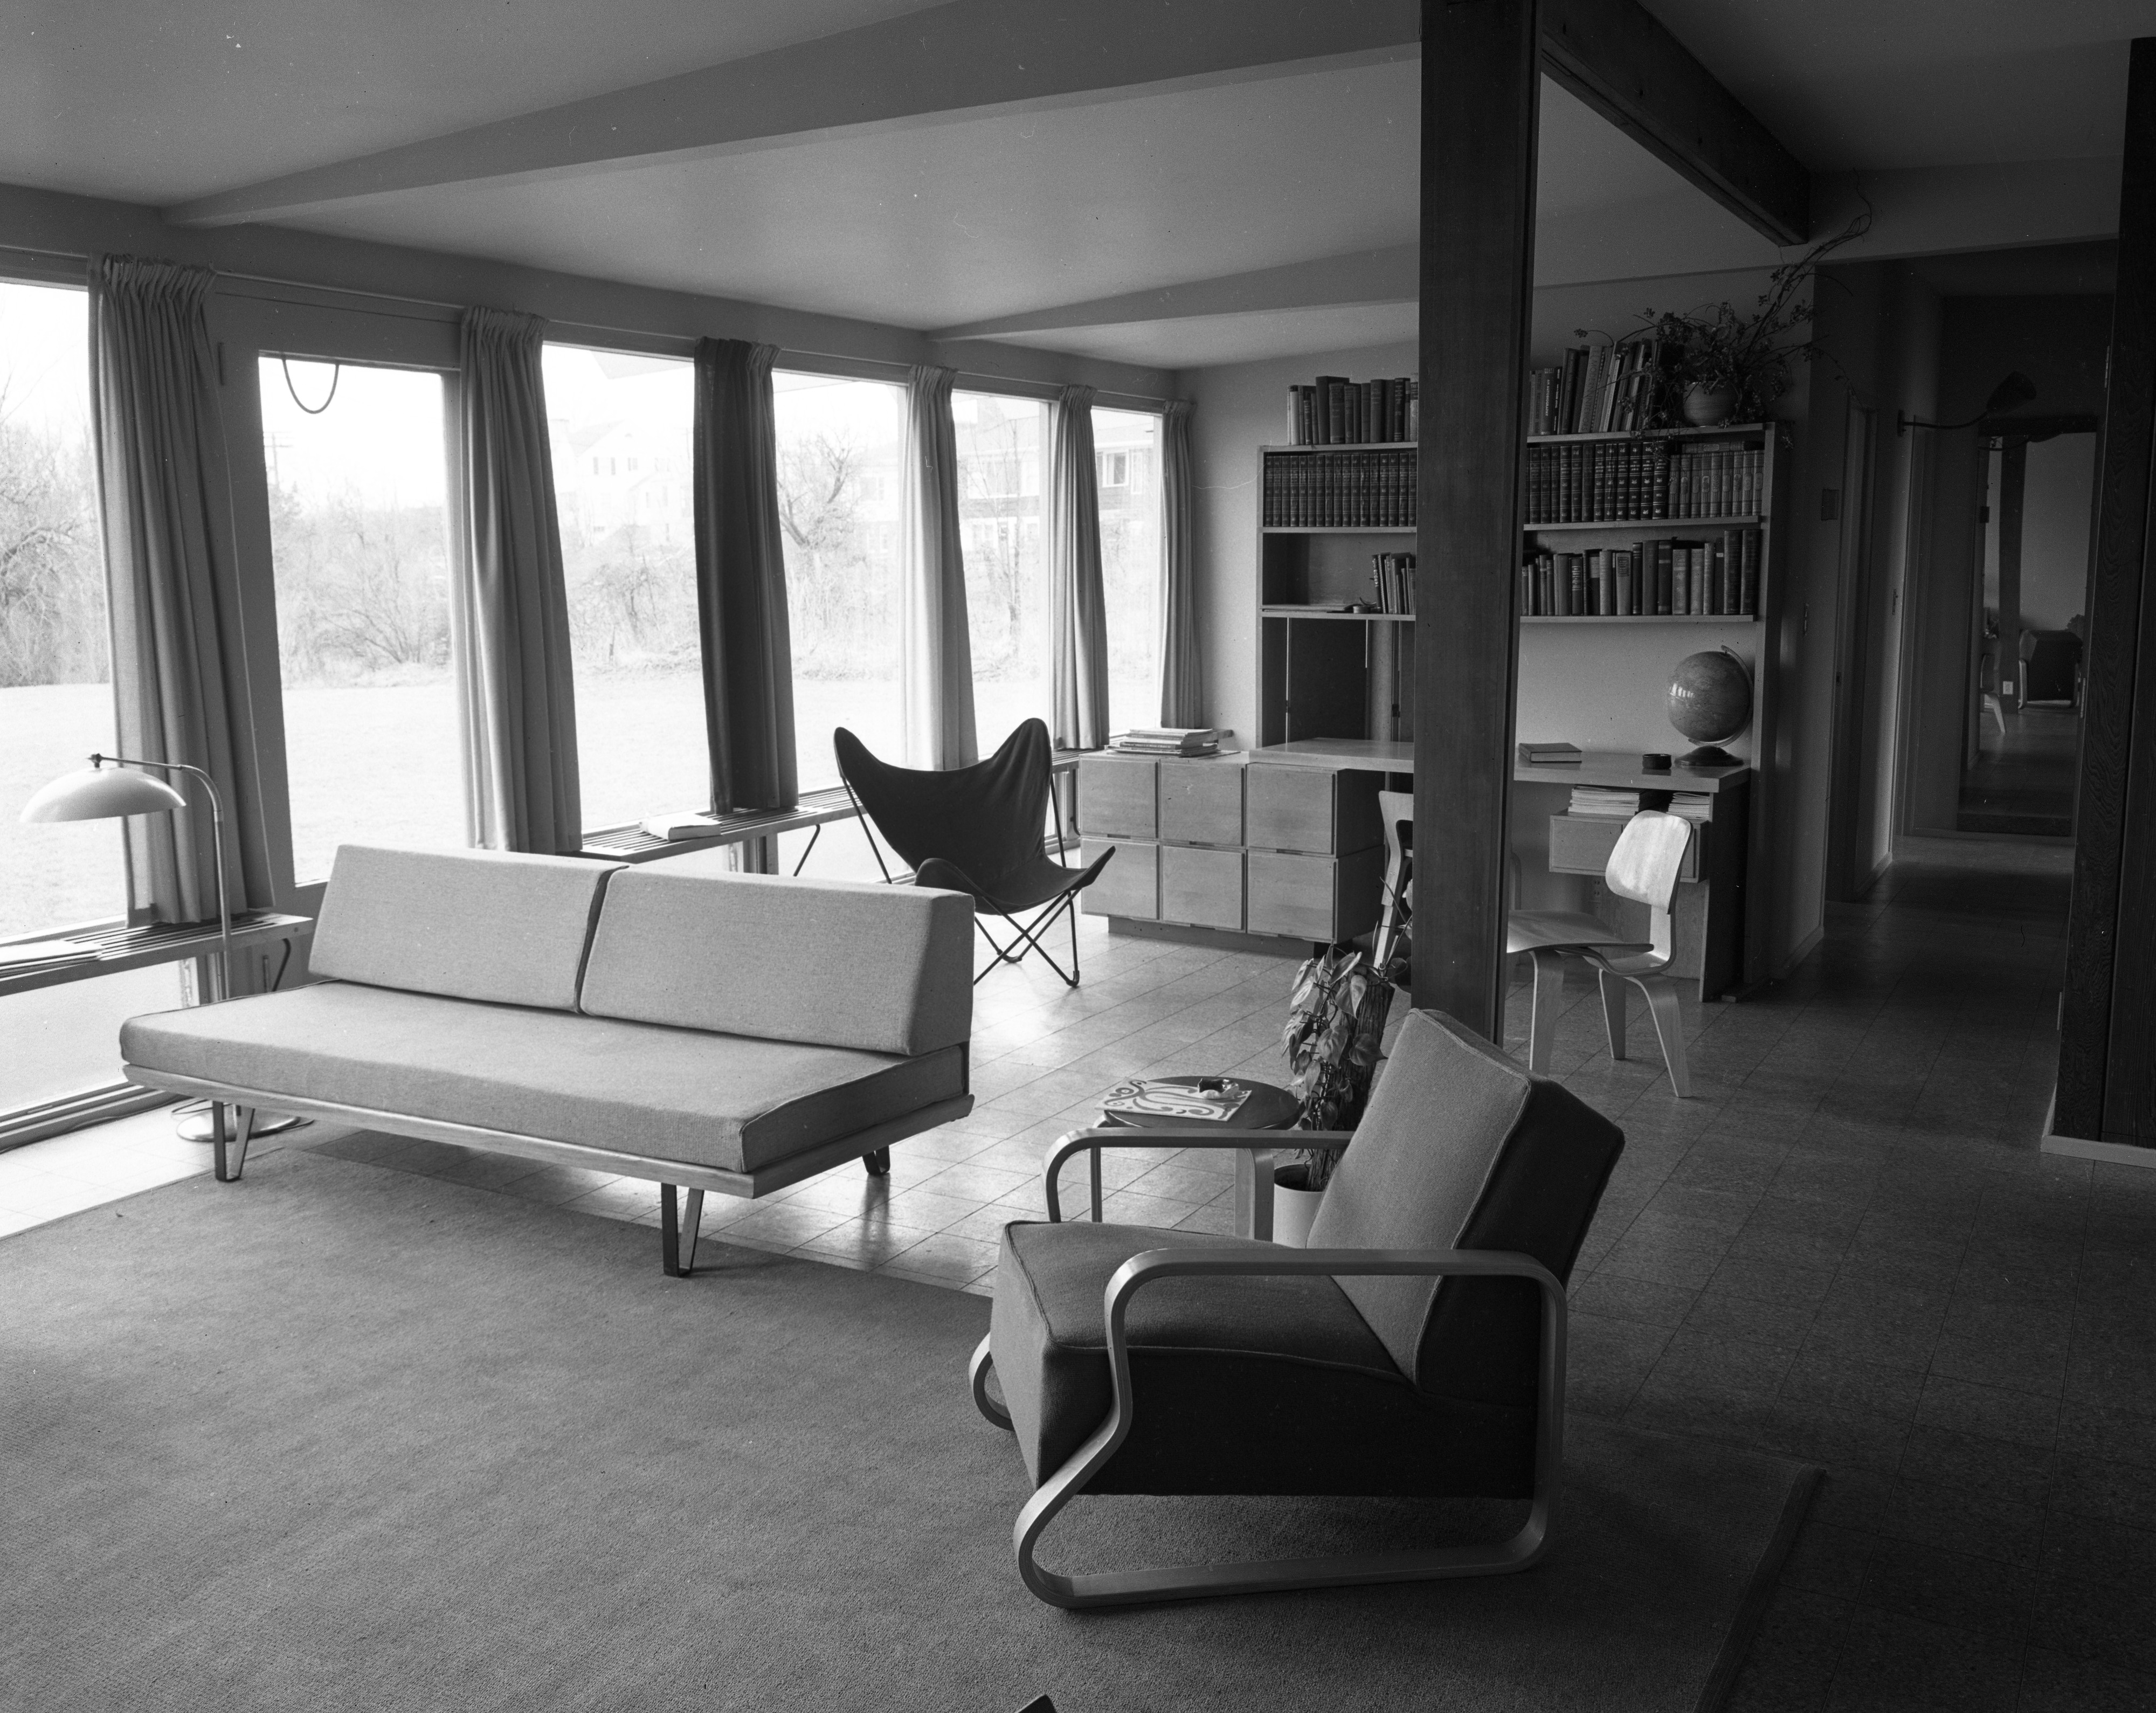 Living Room/Study at Architect Richard M. Robinson Home On Huron View Blvd., 1953 image